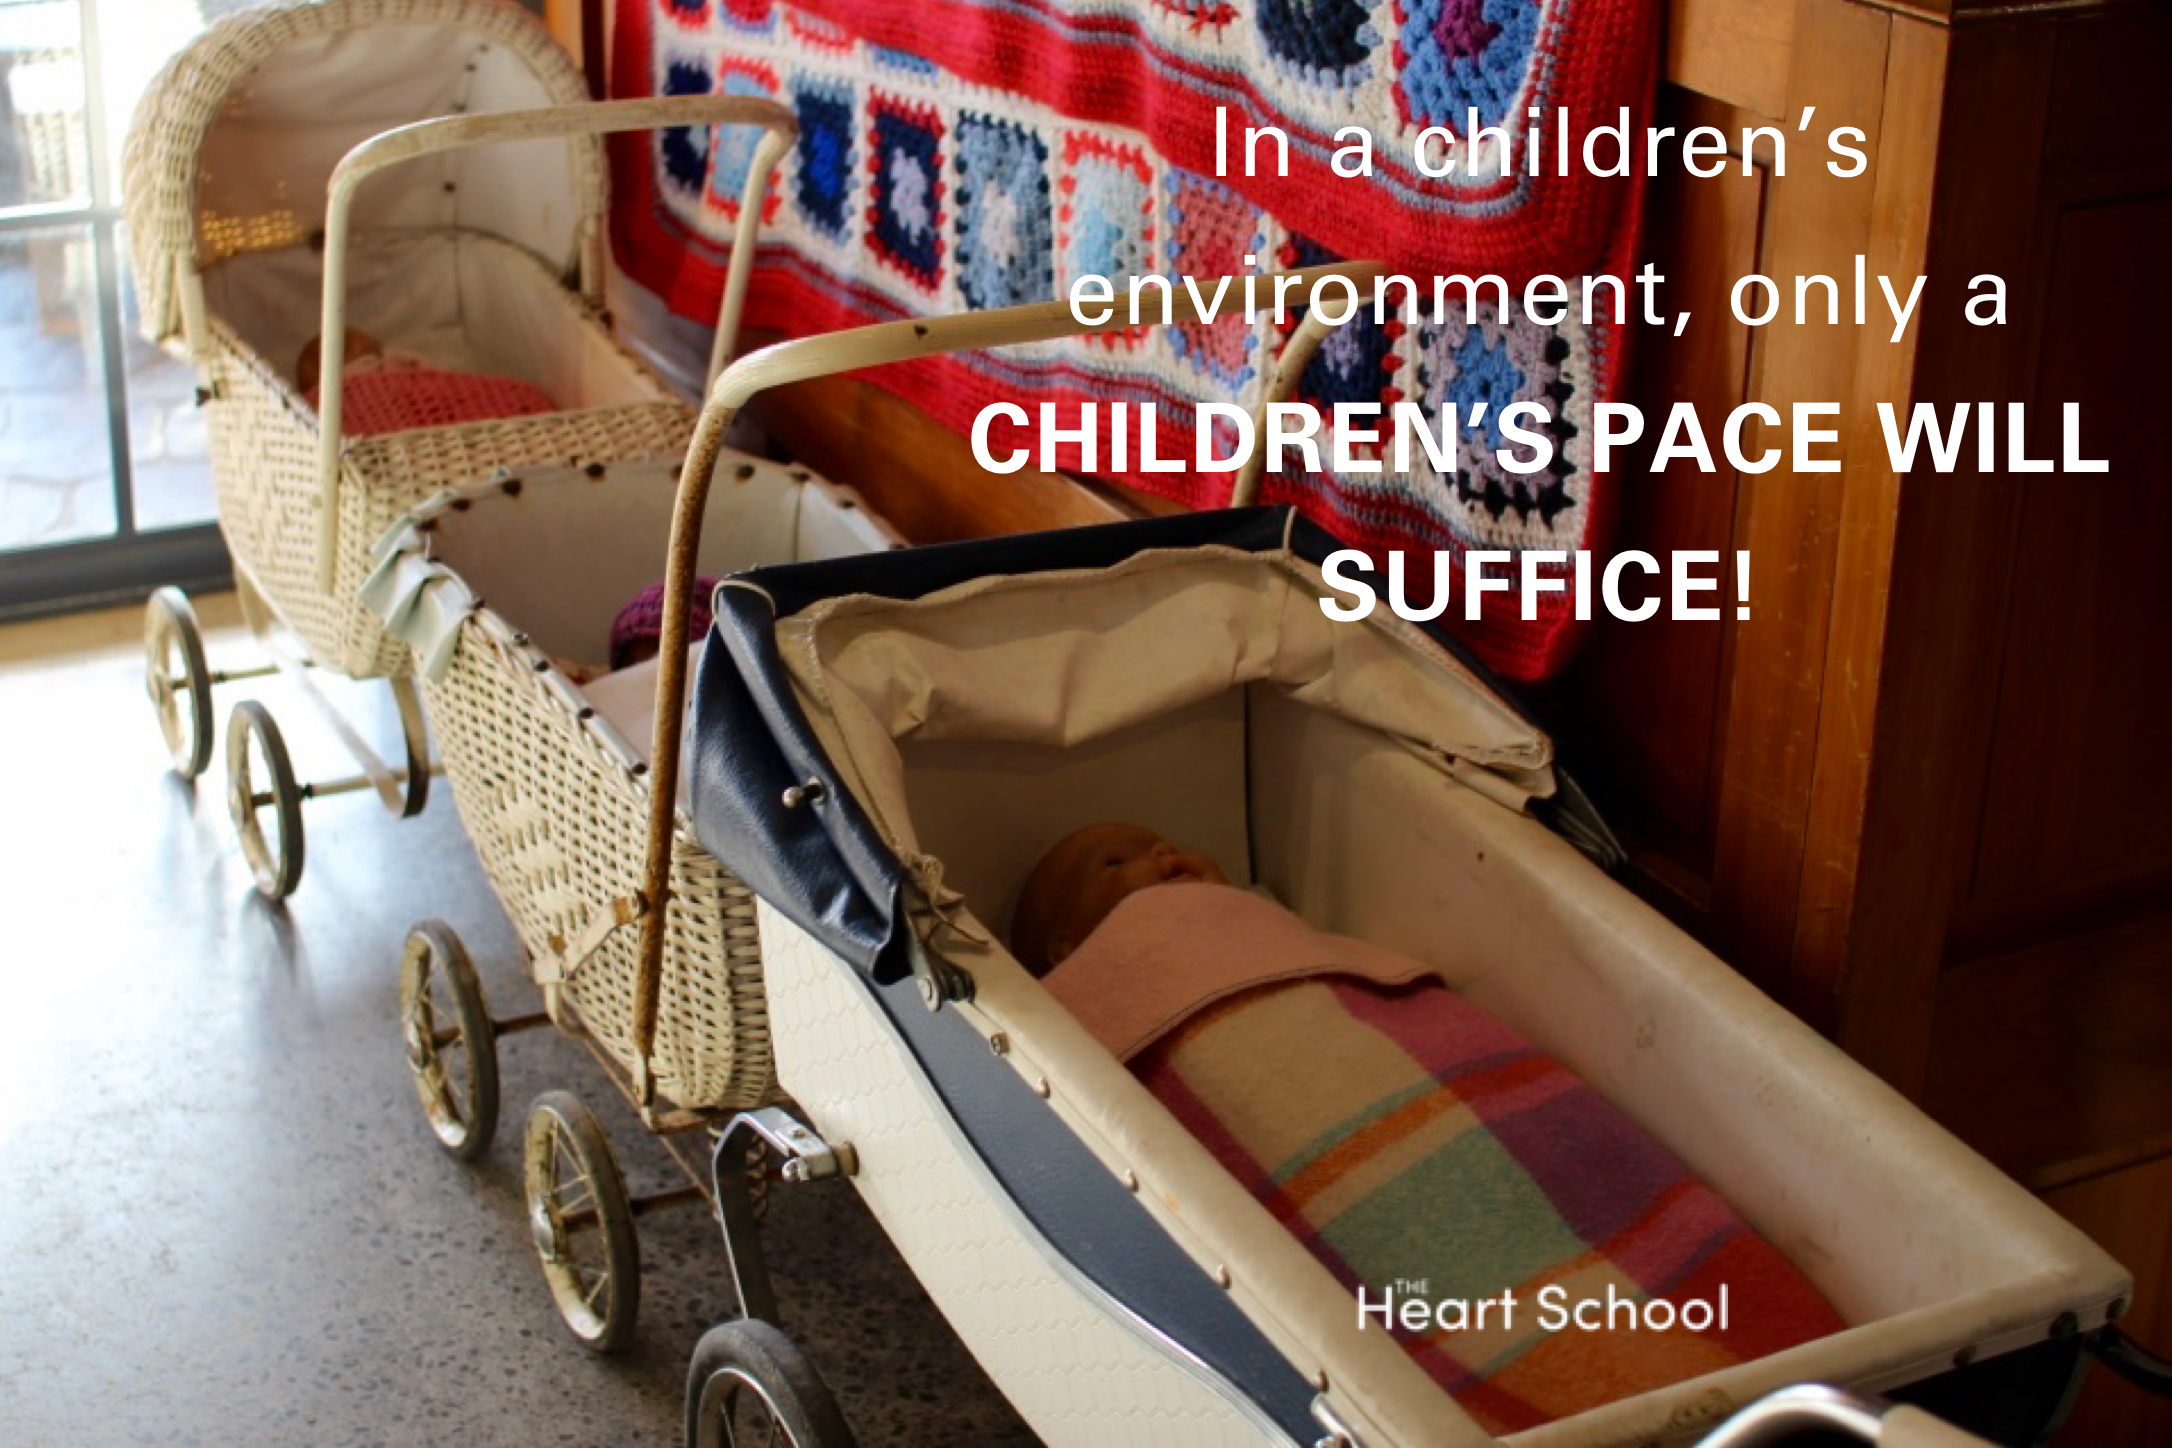 We have to hold the early years as sacred if we are to do the very best for the children in our care.Of all the fundamental gifts we offer to children time is perhaps one of the most important. Magical childhoods are unhurried and protect the children's natural pace. What is the pace of childhood at your centre?